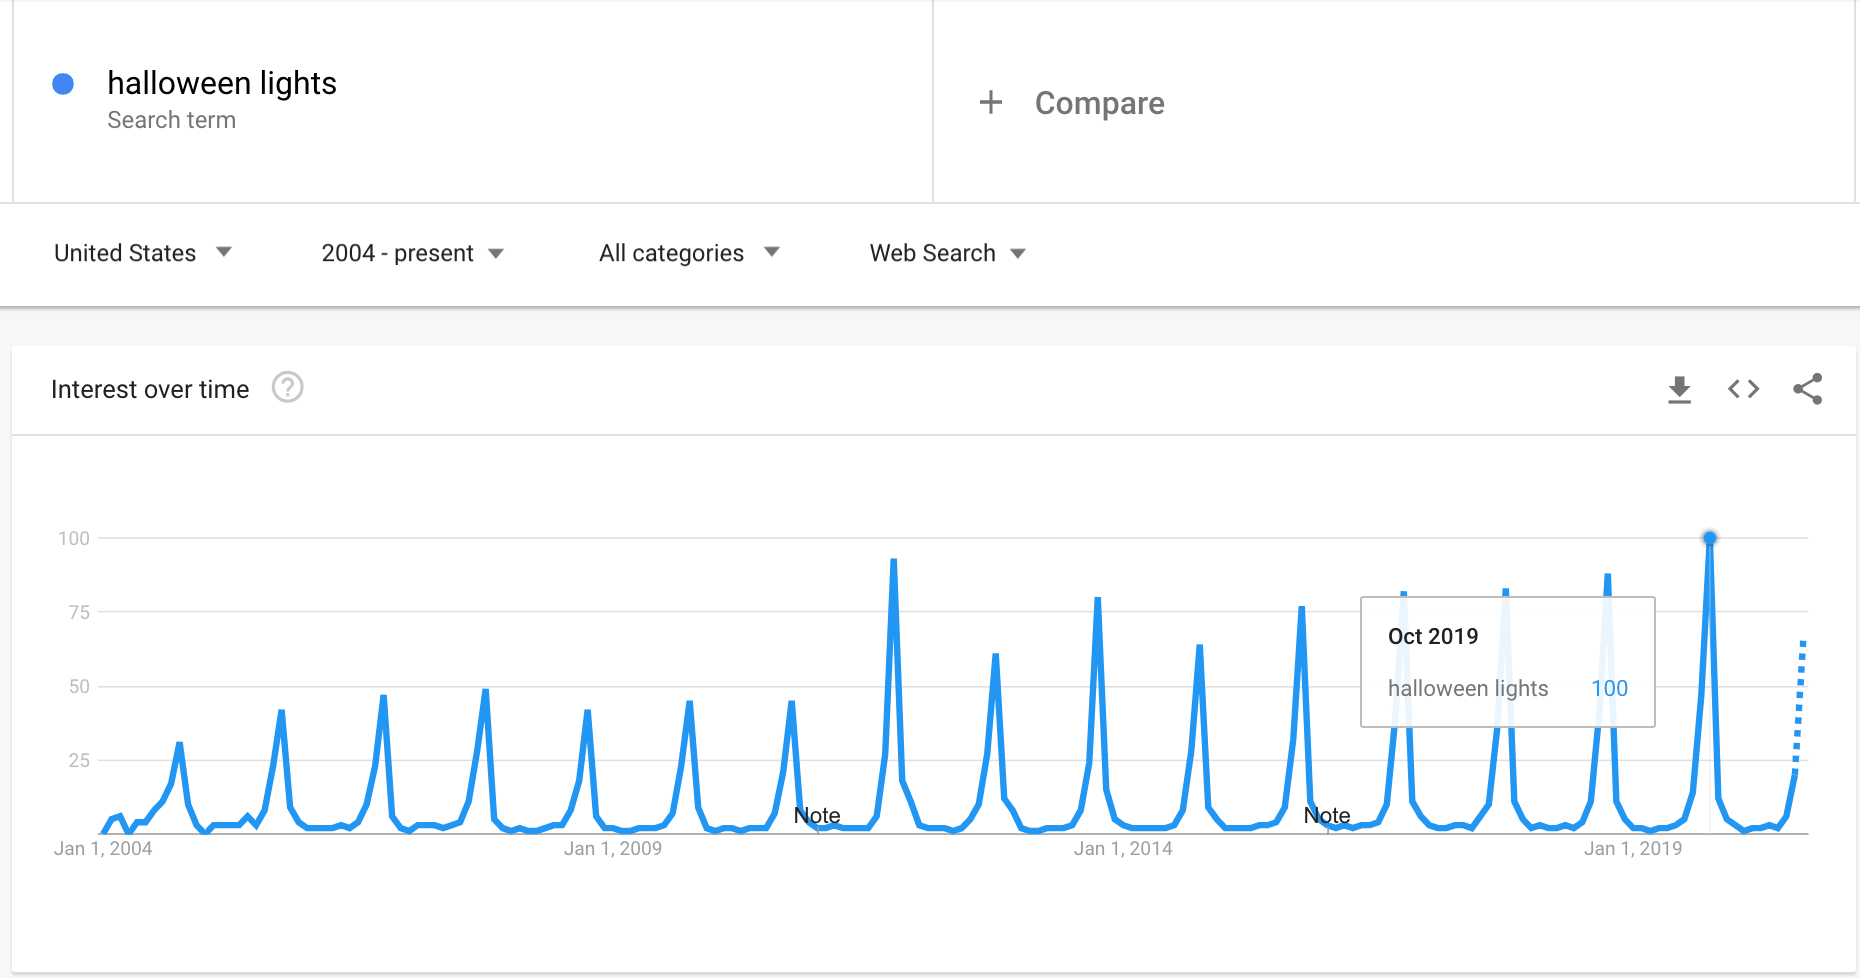 Google Trends graph showing the interest in Halloween lights